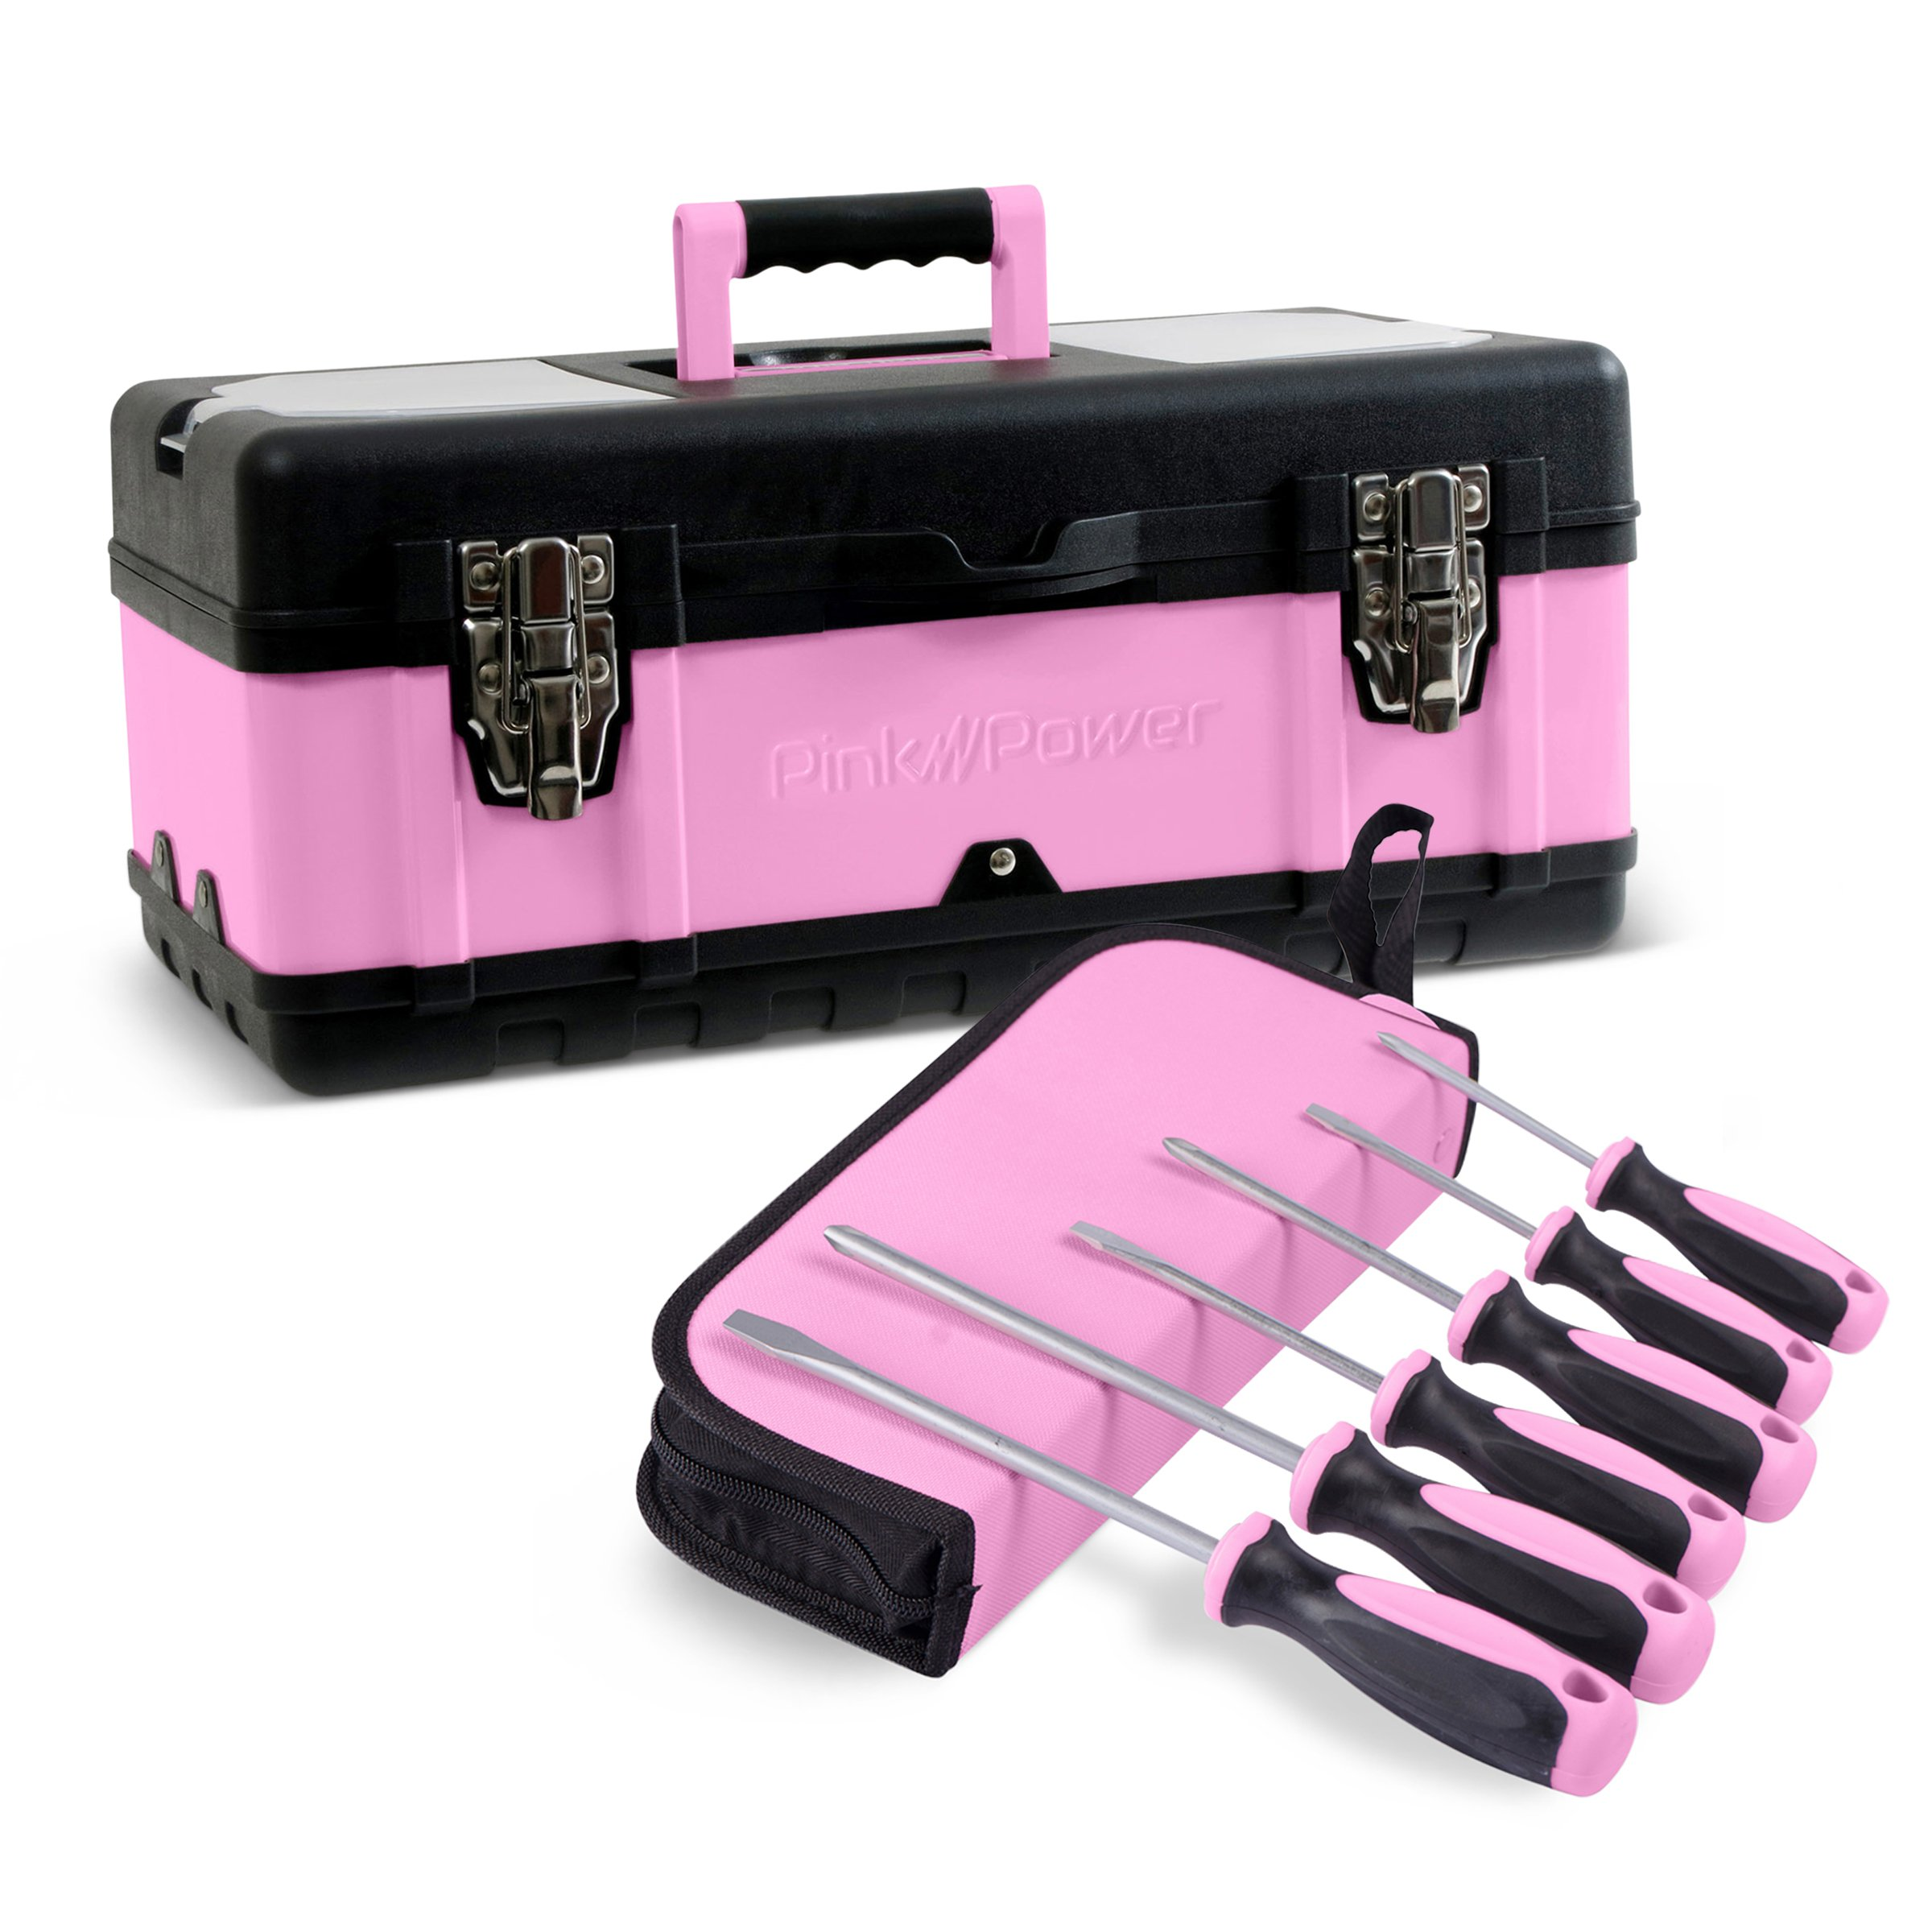 "Pink Power 18"" Portable Aluminum Tool Box & 6 Piece Screwdriver Set for Women"